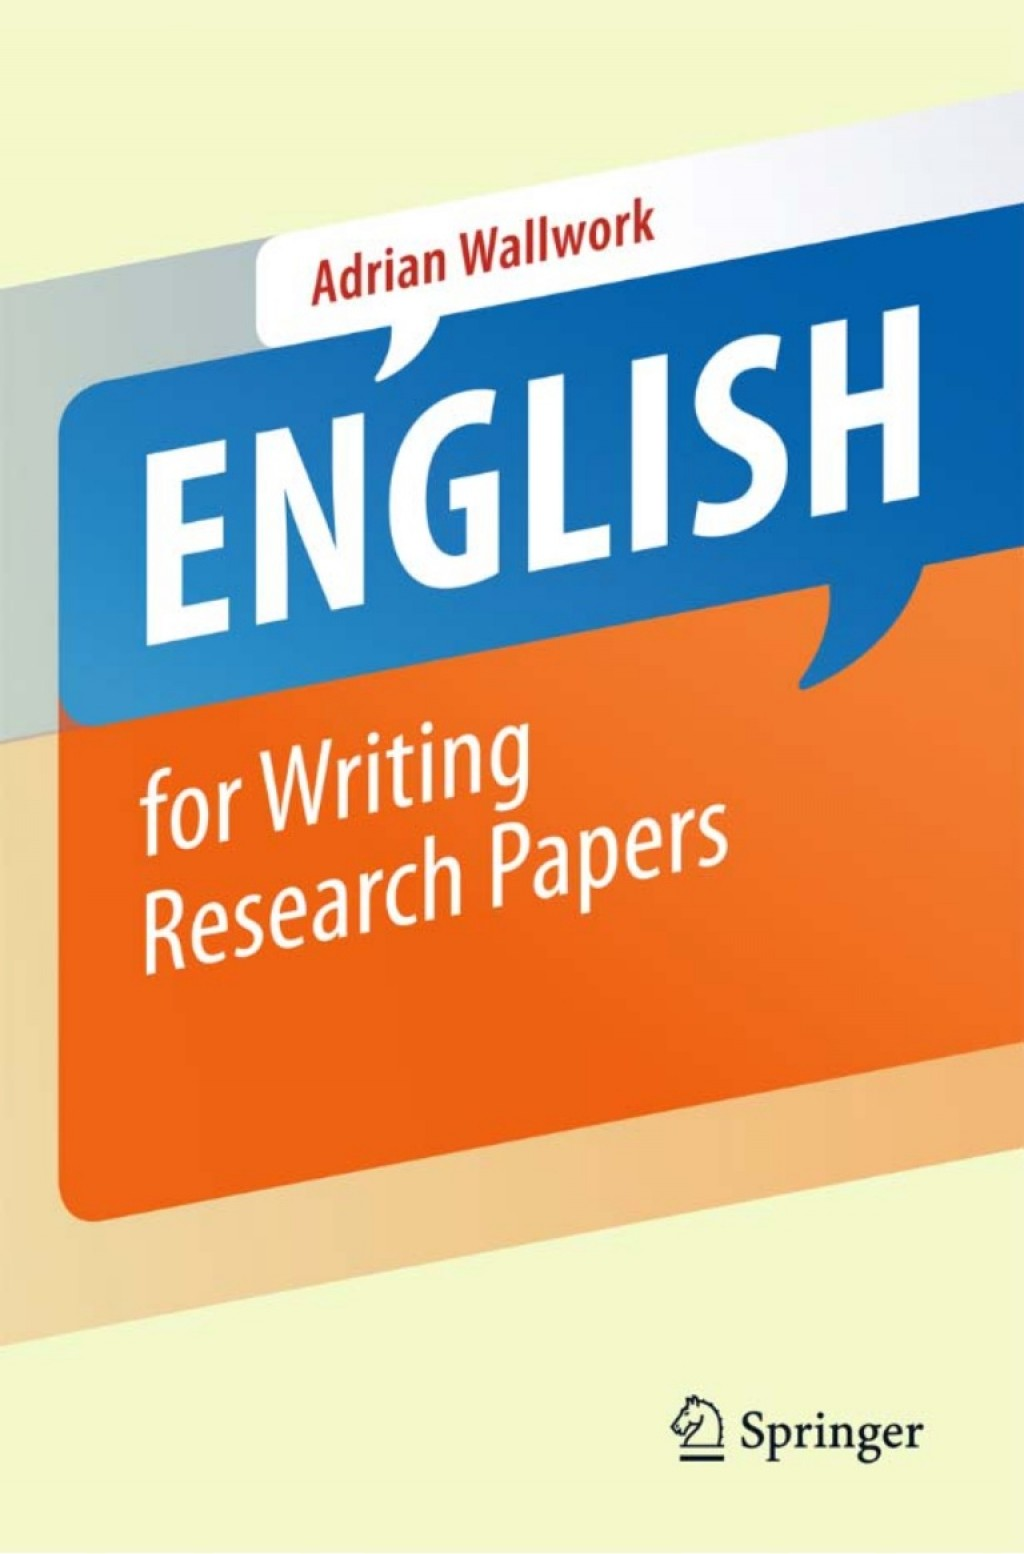 019 Englishforwritingresearchpapers Conversion Gate01 Thumbnail Writing Research Striking Paper Papers A Complete Guide 16th Edition Pdf James D Lester Outline Large